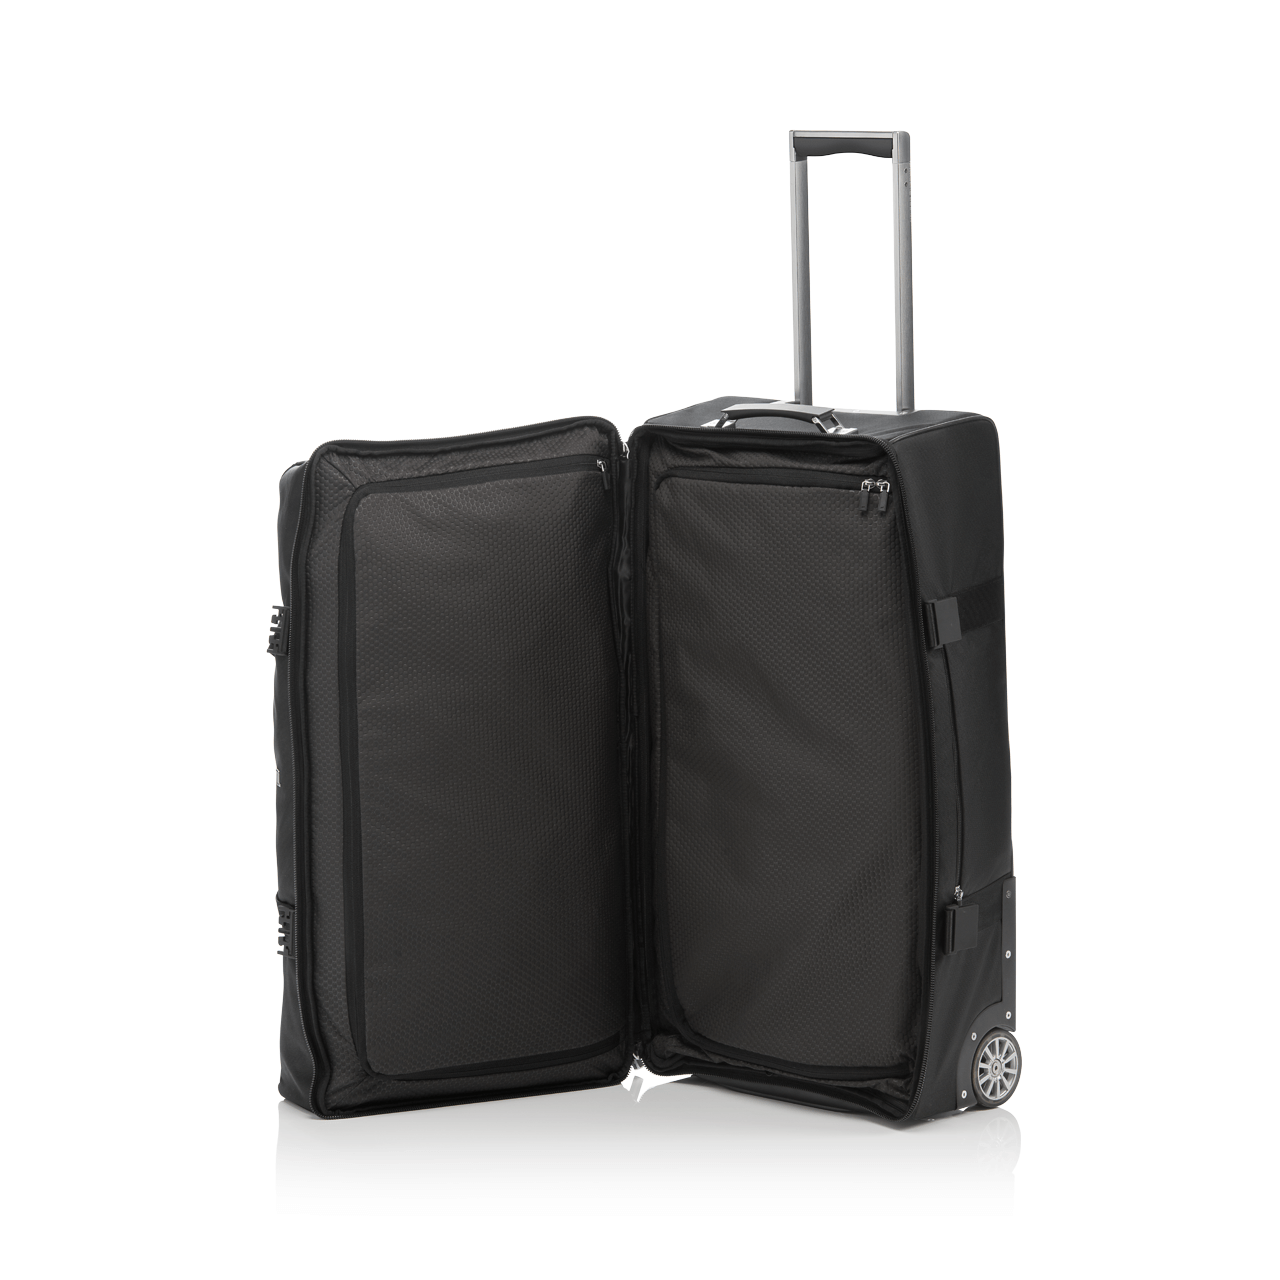 ROADSTER SOFTCASE SERIES TRAVELBAG L - фото 2